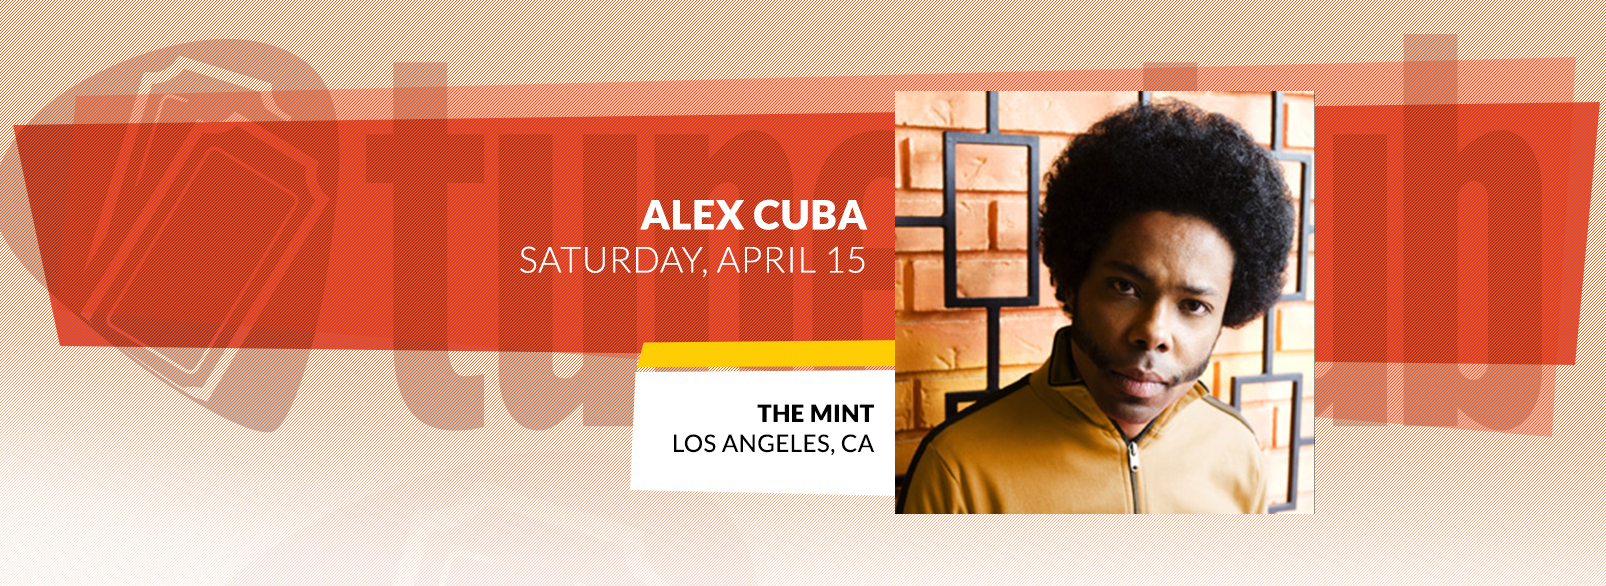 Alex Cuba @ The Mint